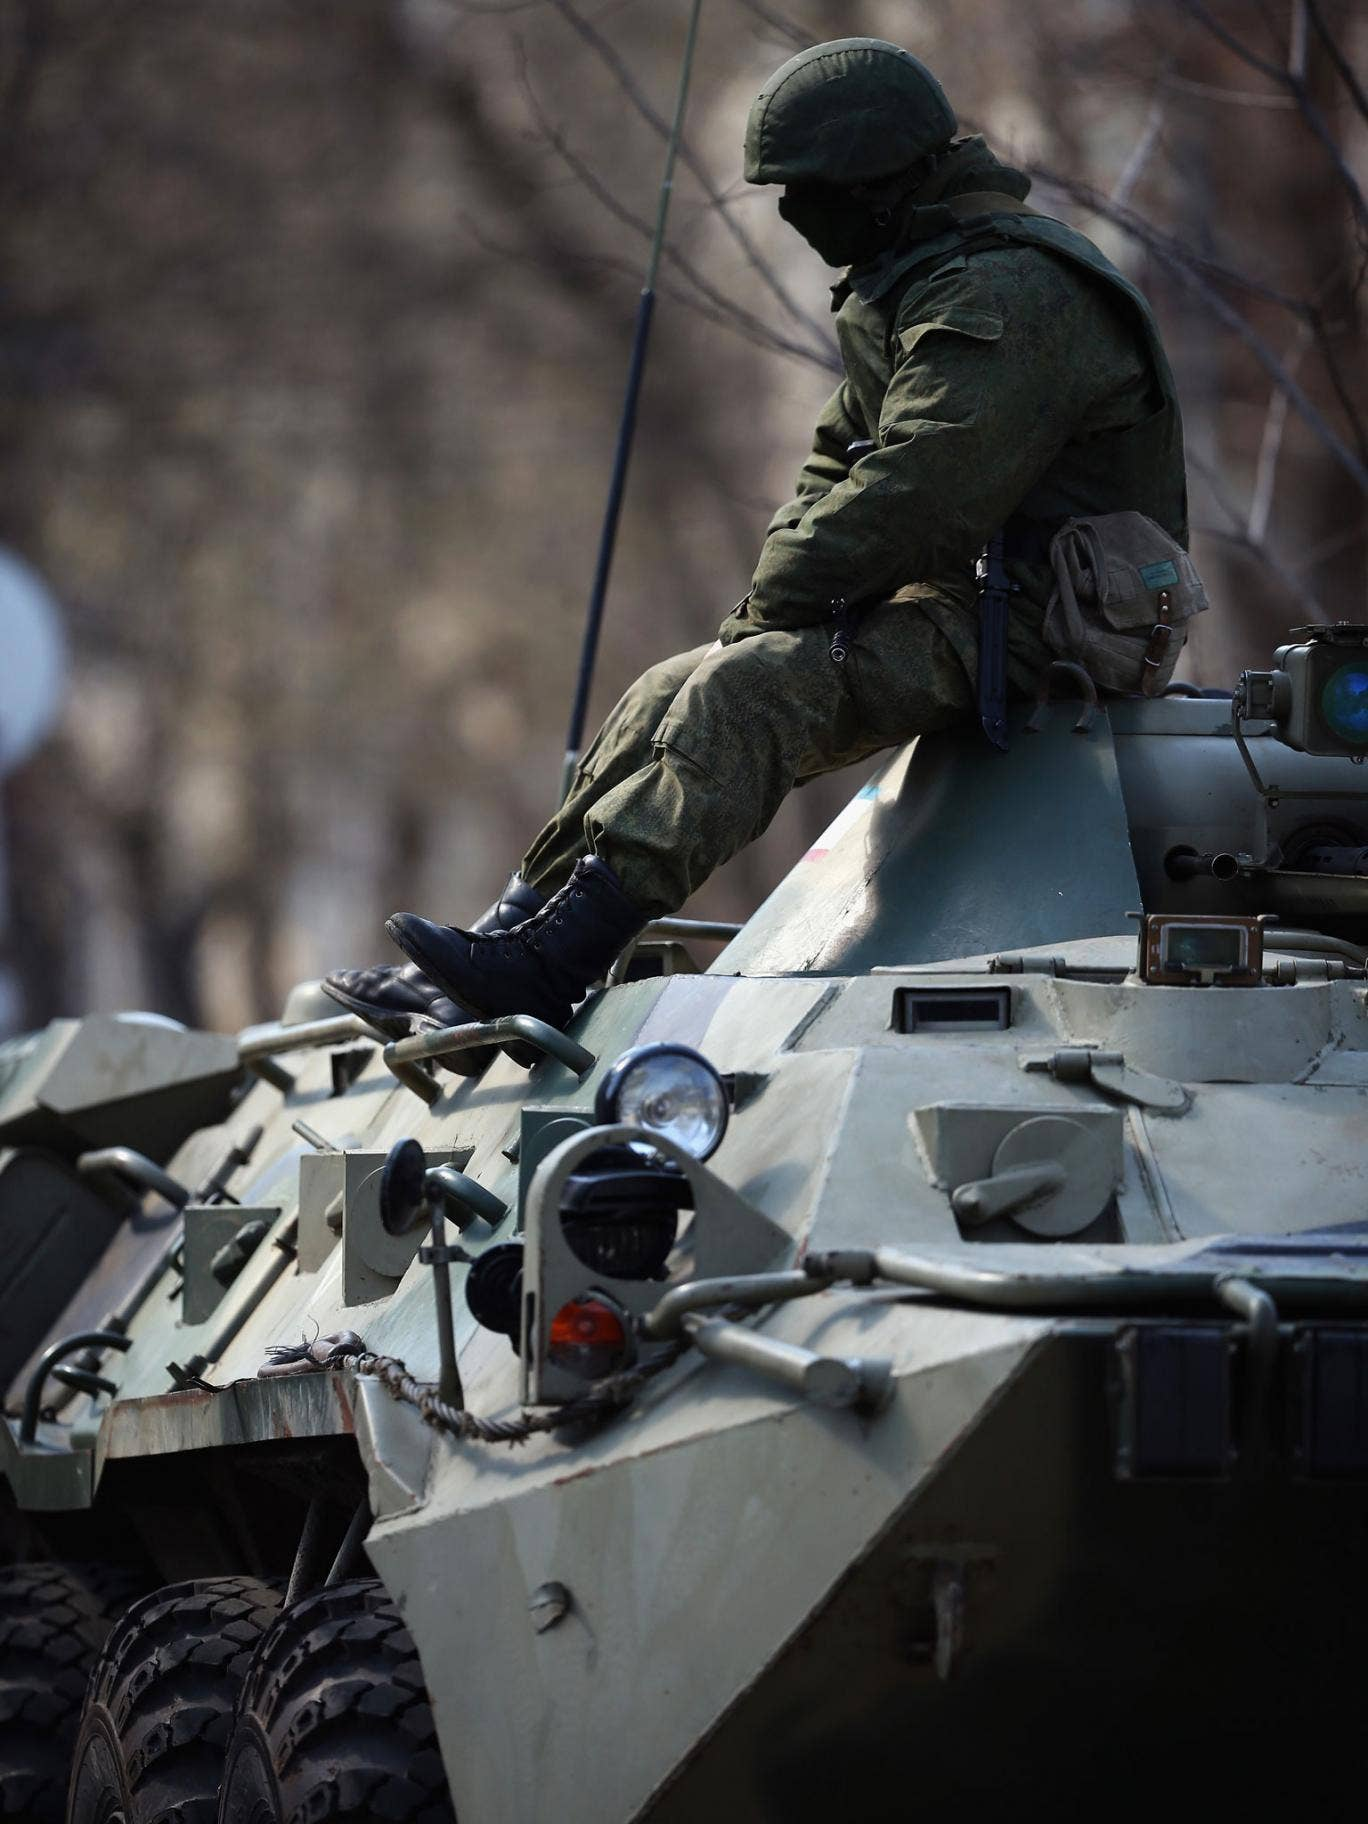 A Russian military man sits on top of a Russian military personnel carrier outside a Ukrainian military base on March 18, 2014 in Simferopol, Ukraine